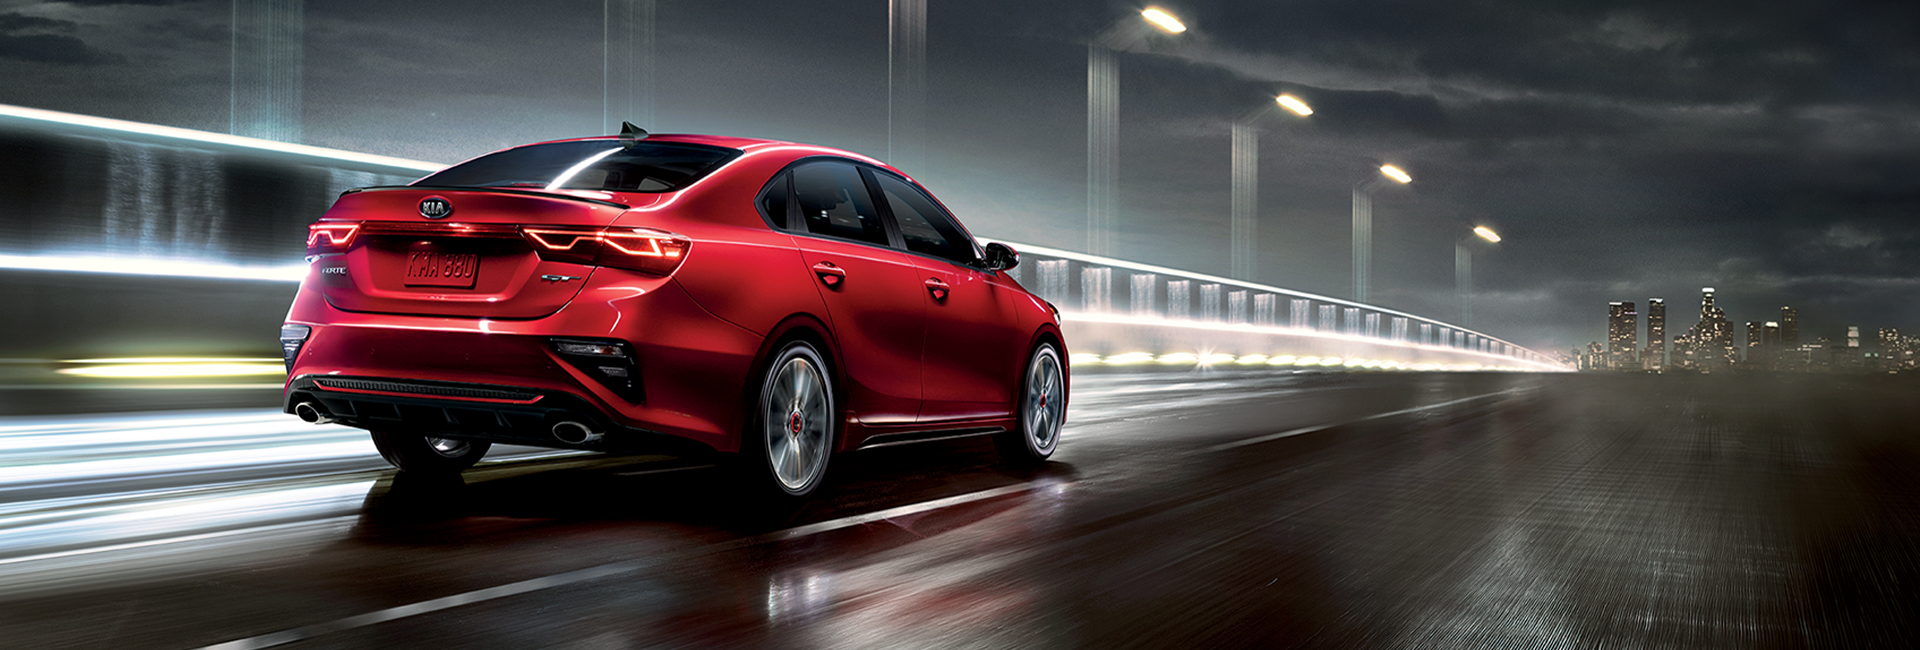 Rear view of a red 2021 Kia Forte in motion